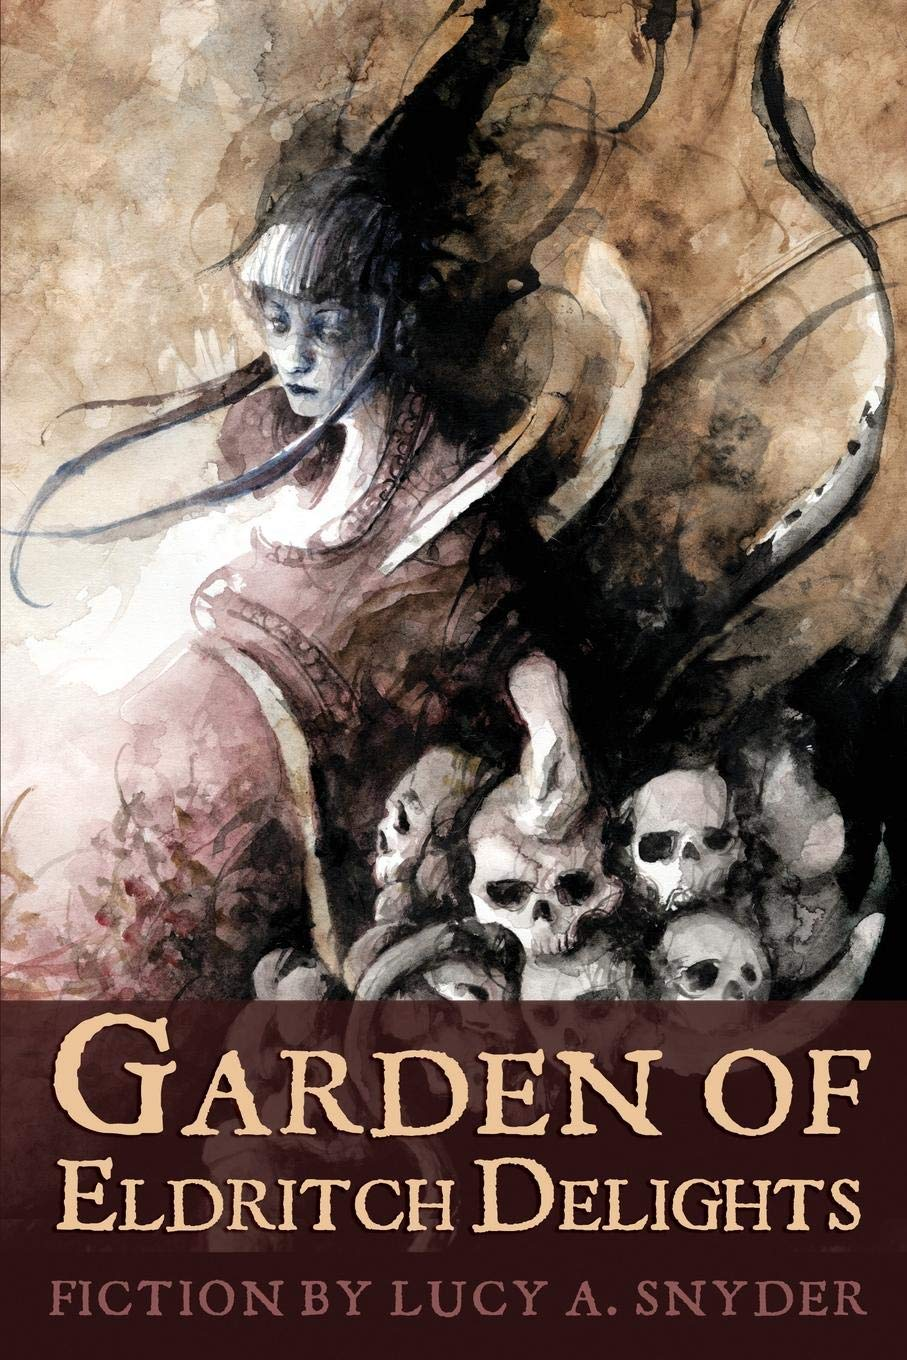 Garden of Eldritch Delights_Lucy Snyder.jpg